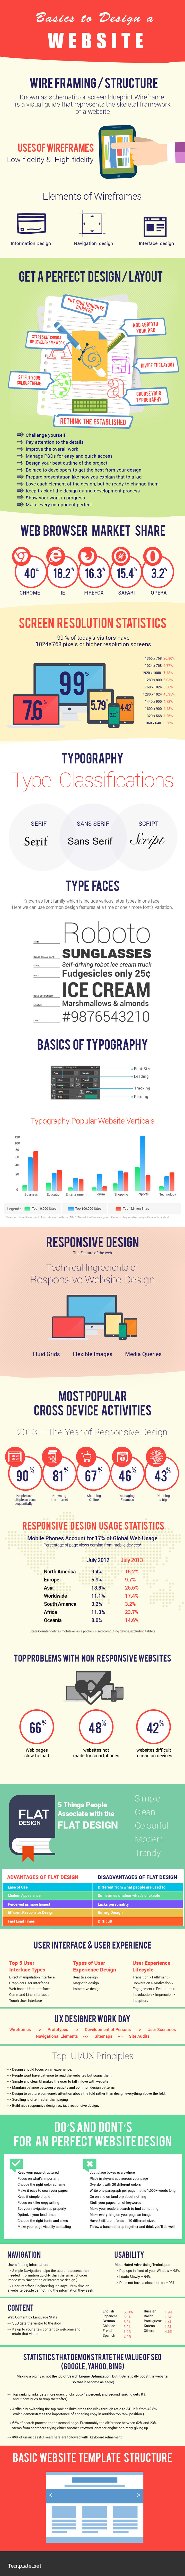 Infographic: Anatomy of A Perfect Website Template.